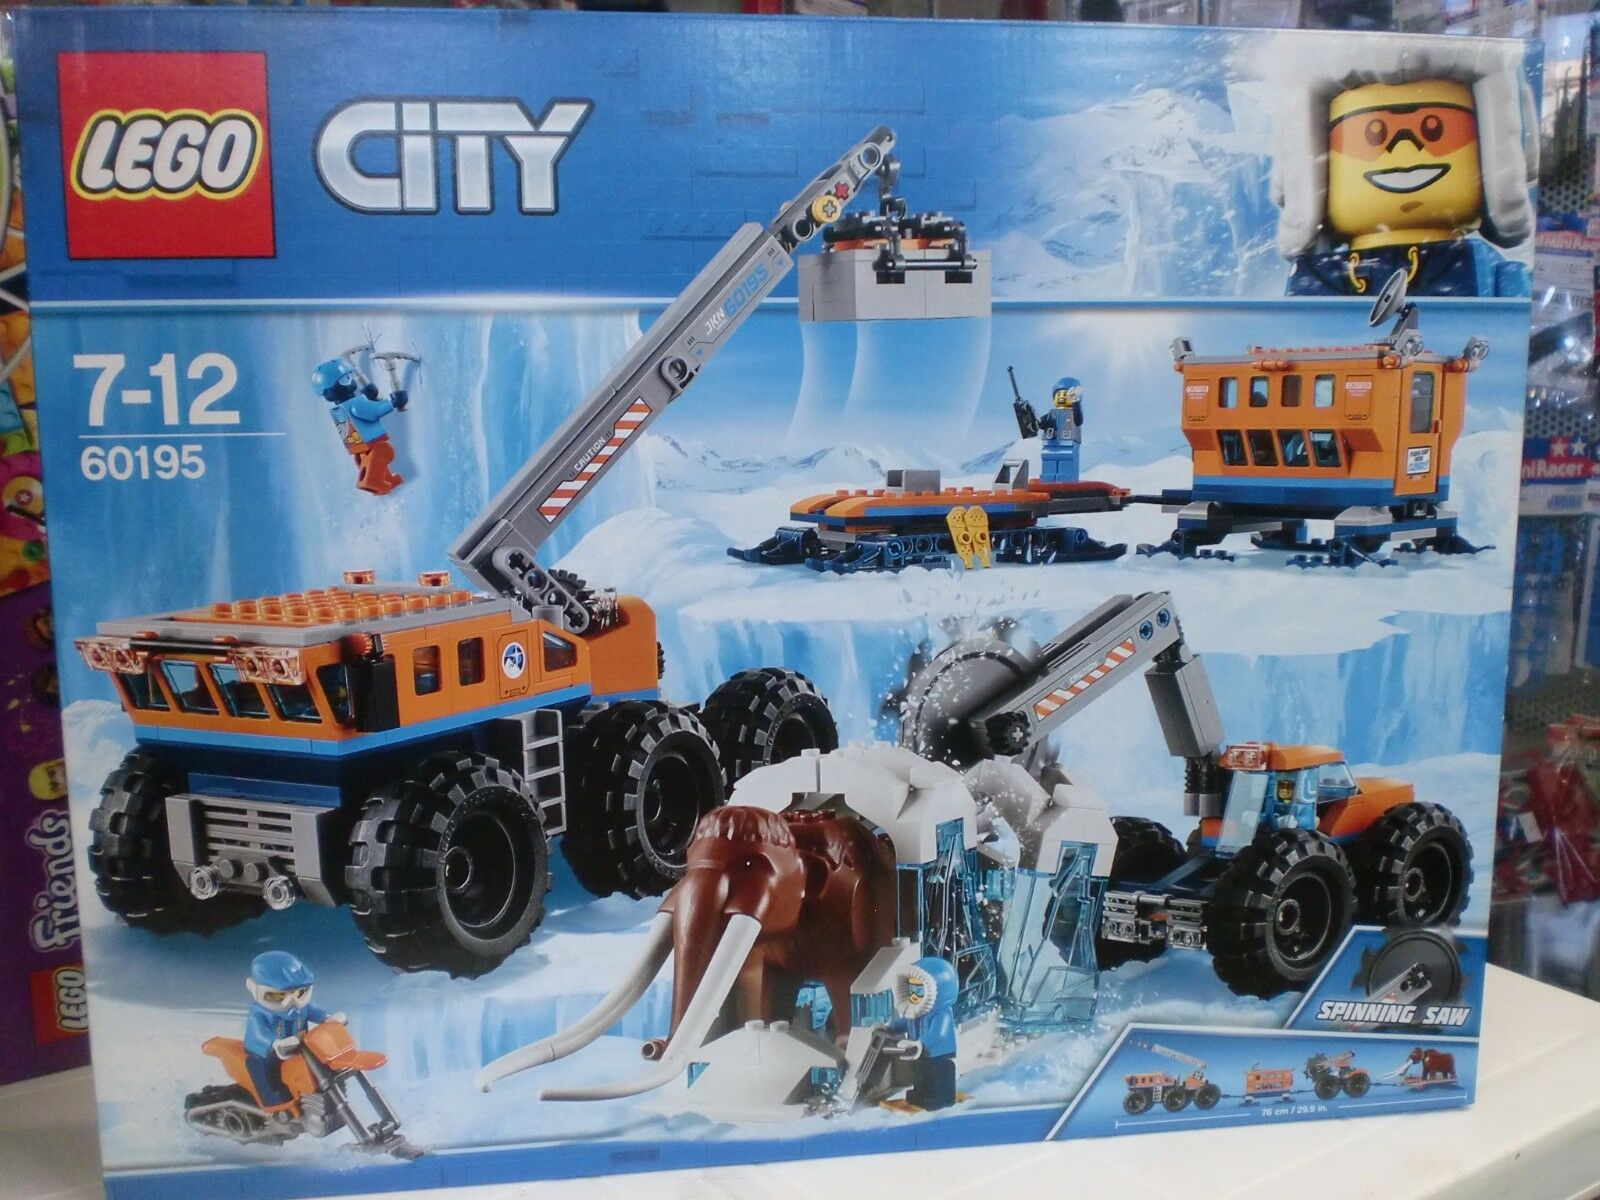 LEGO 60195 - BASE MOBILE DI ESPLORAZIONE ARTICA - SERIE CITY